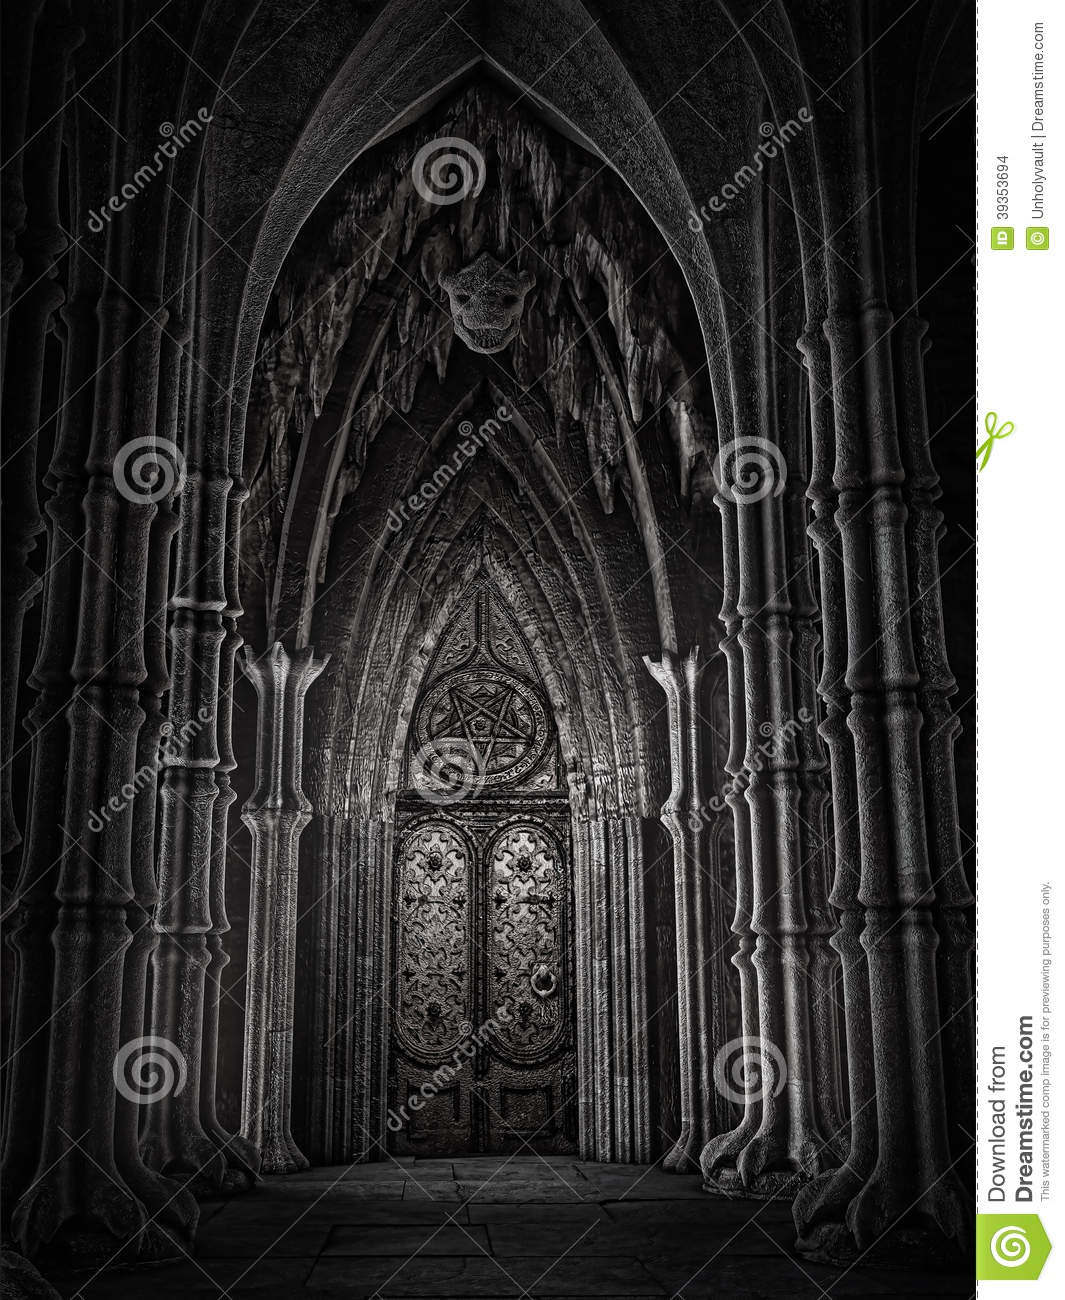 door fantasy cathedral ornamented dark 39353694